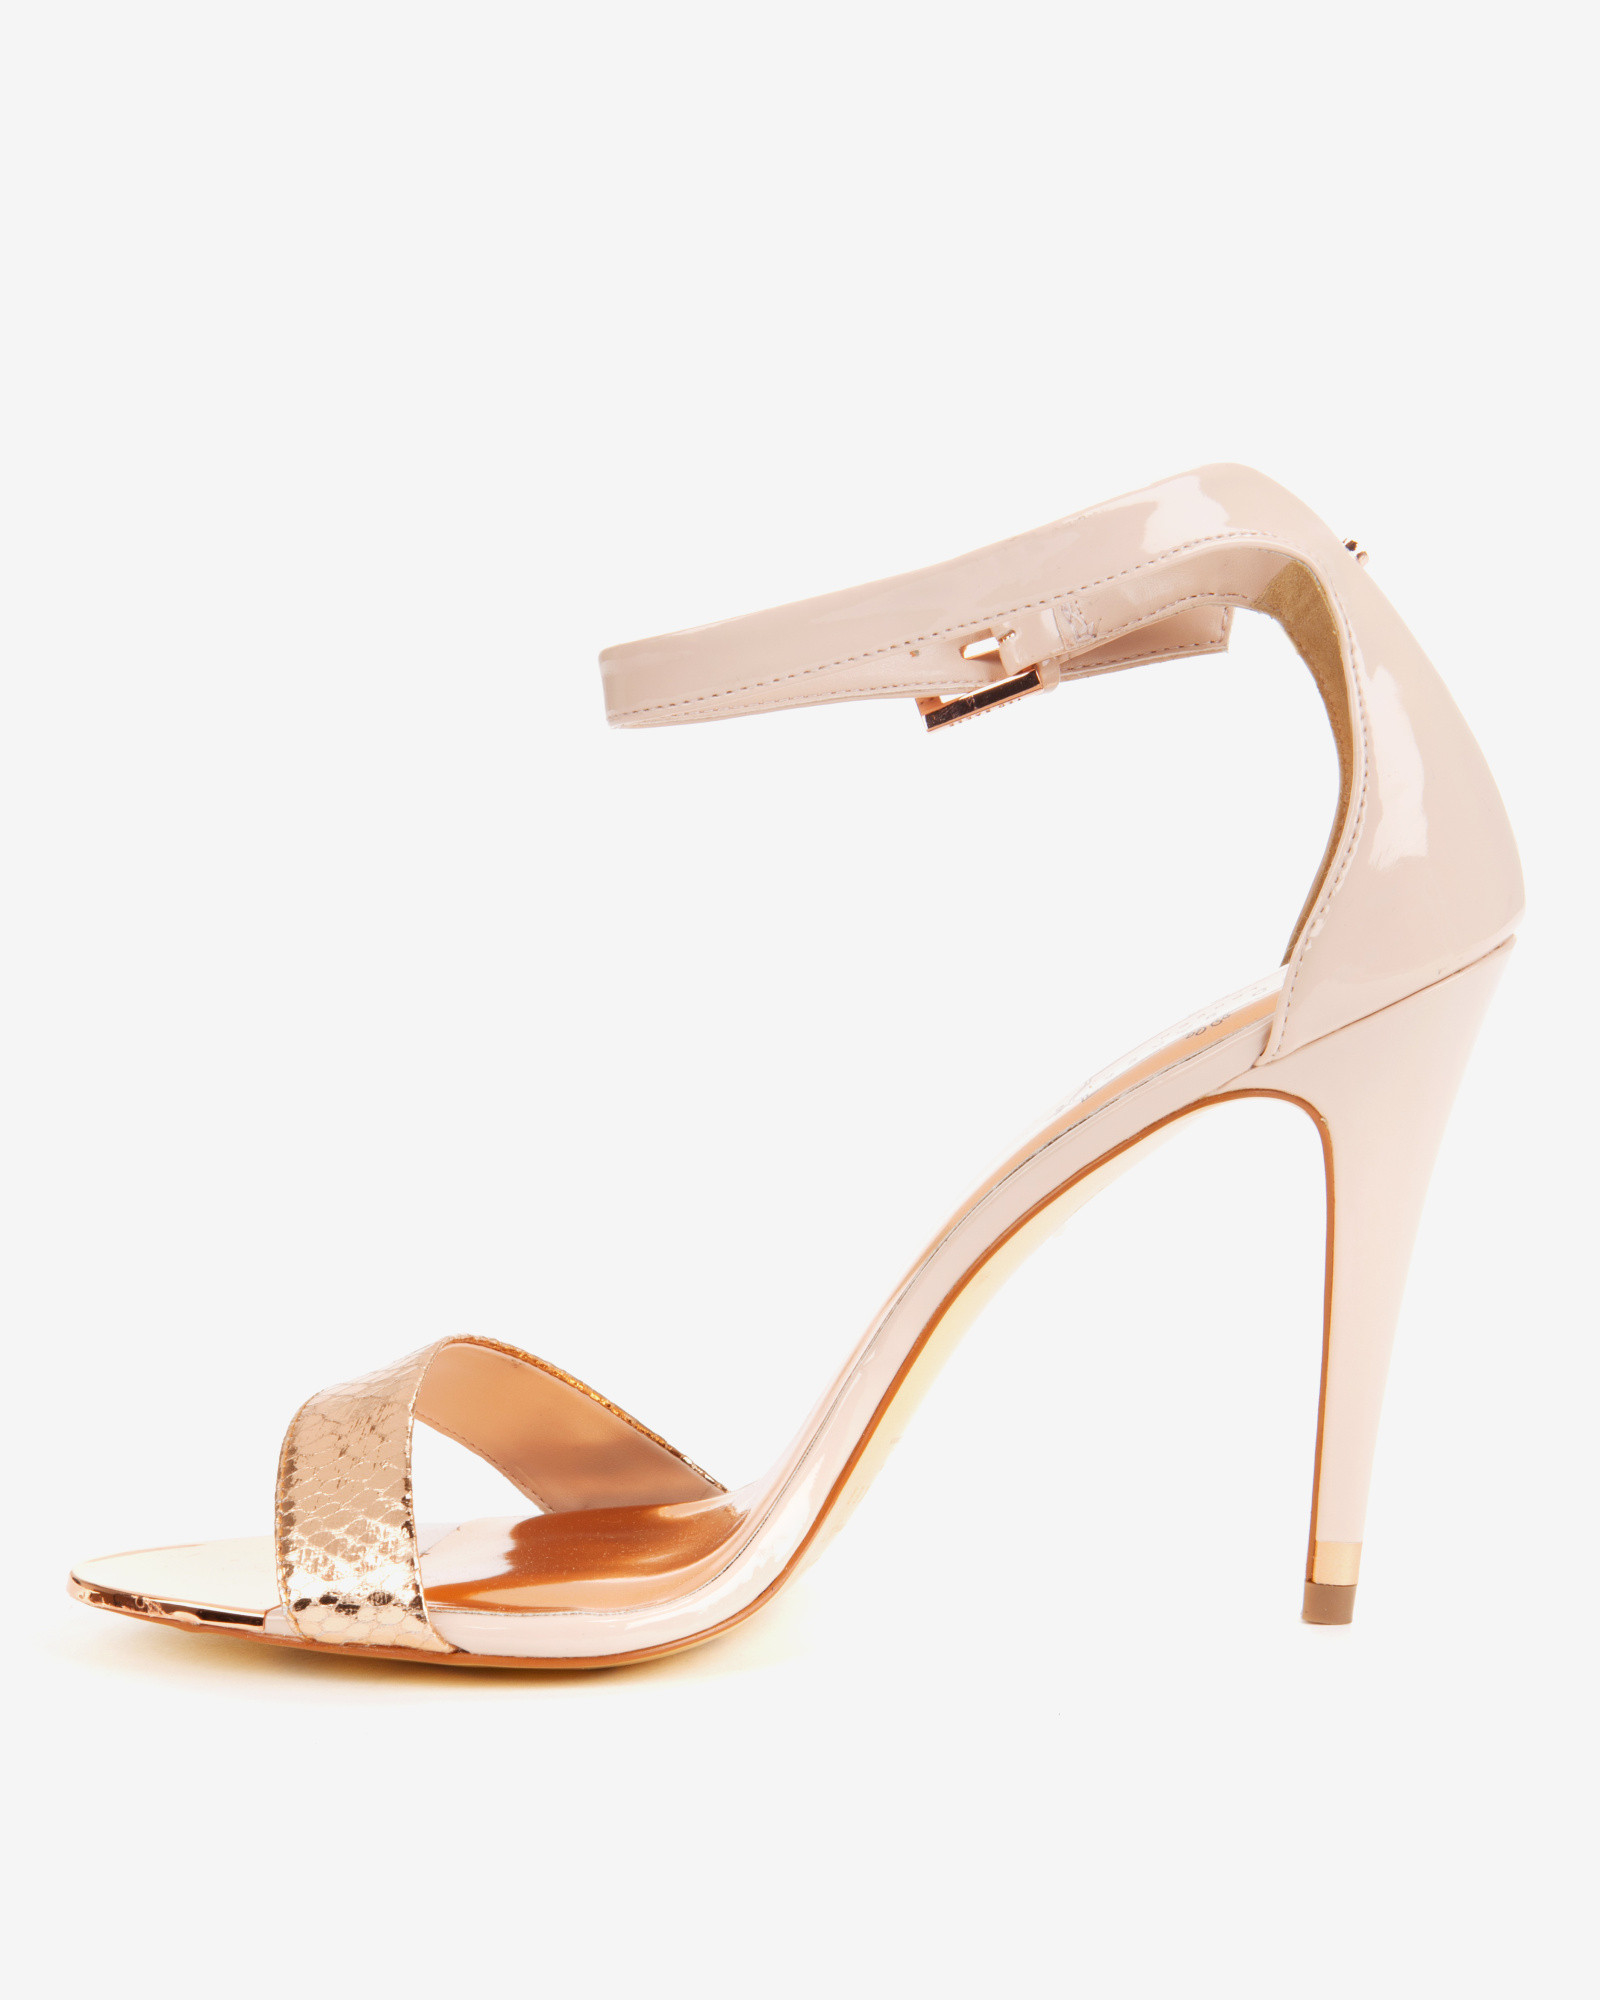 Ted Baker Ankle Strap Sandals in Pink - Lyst